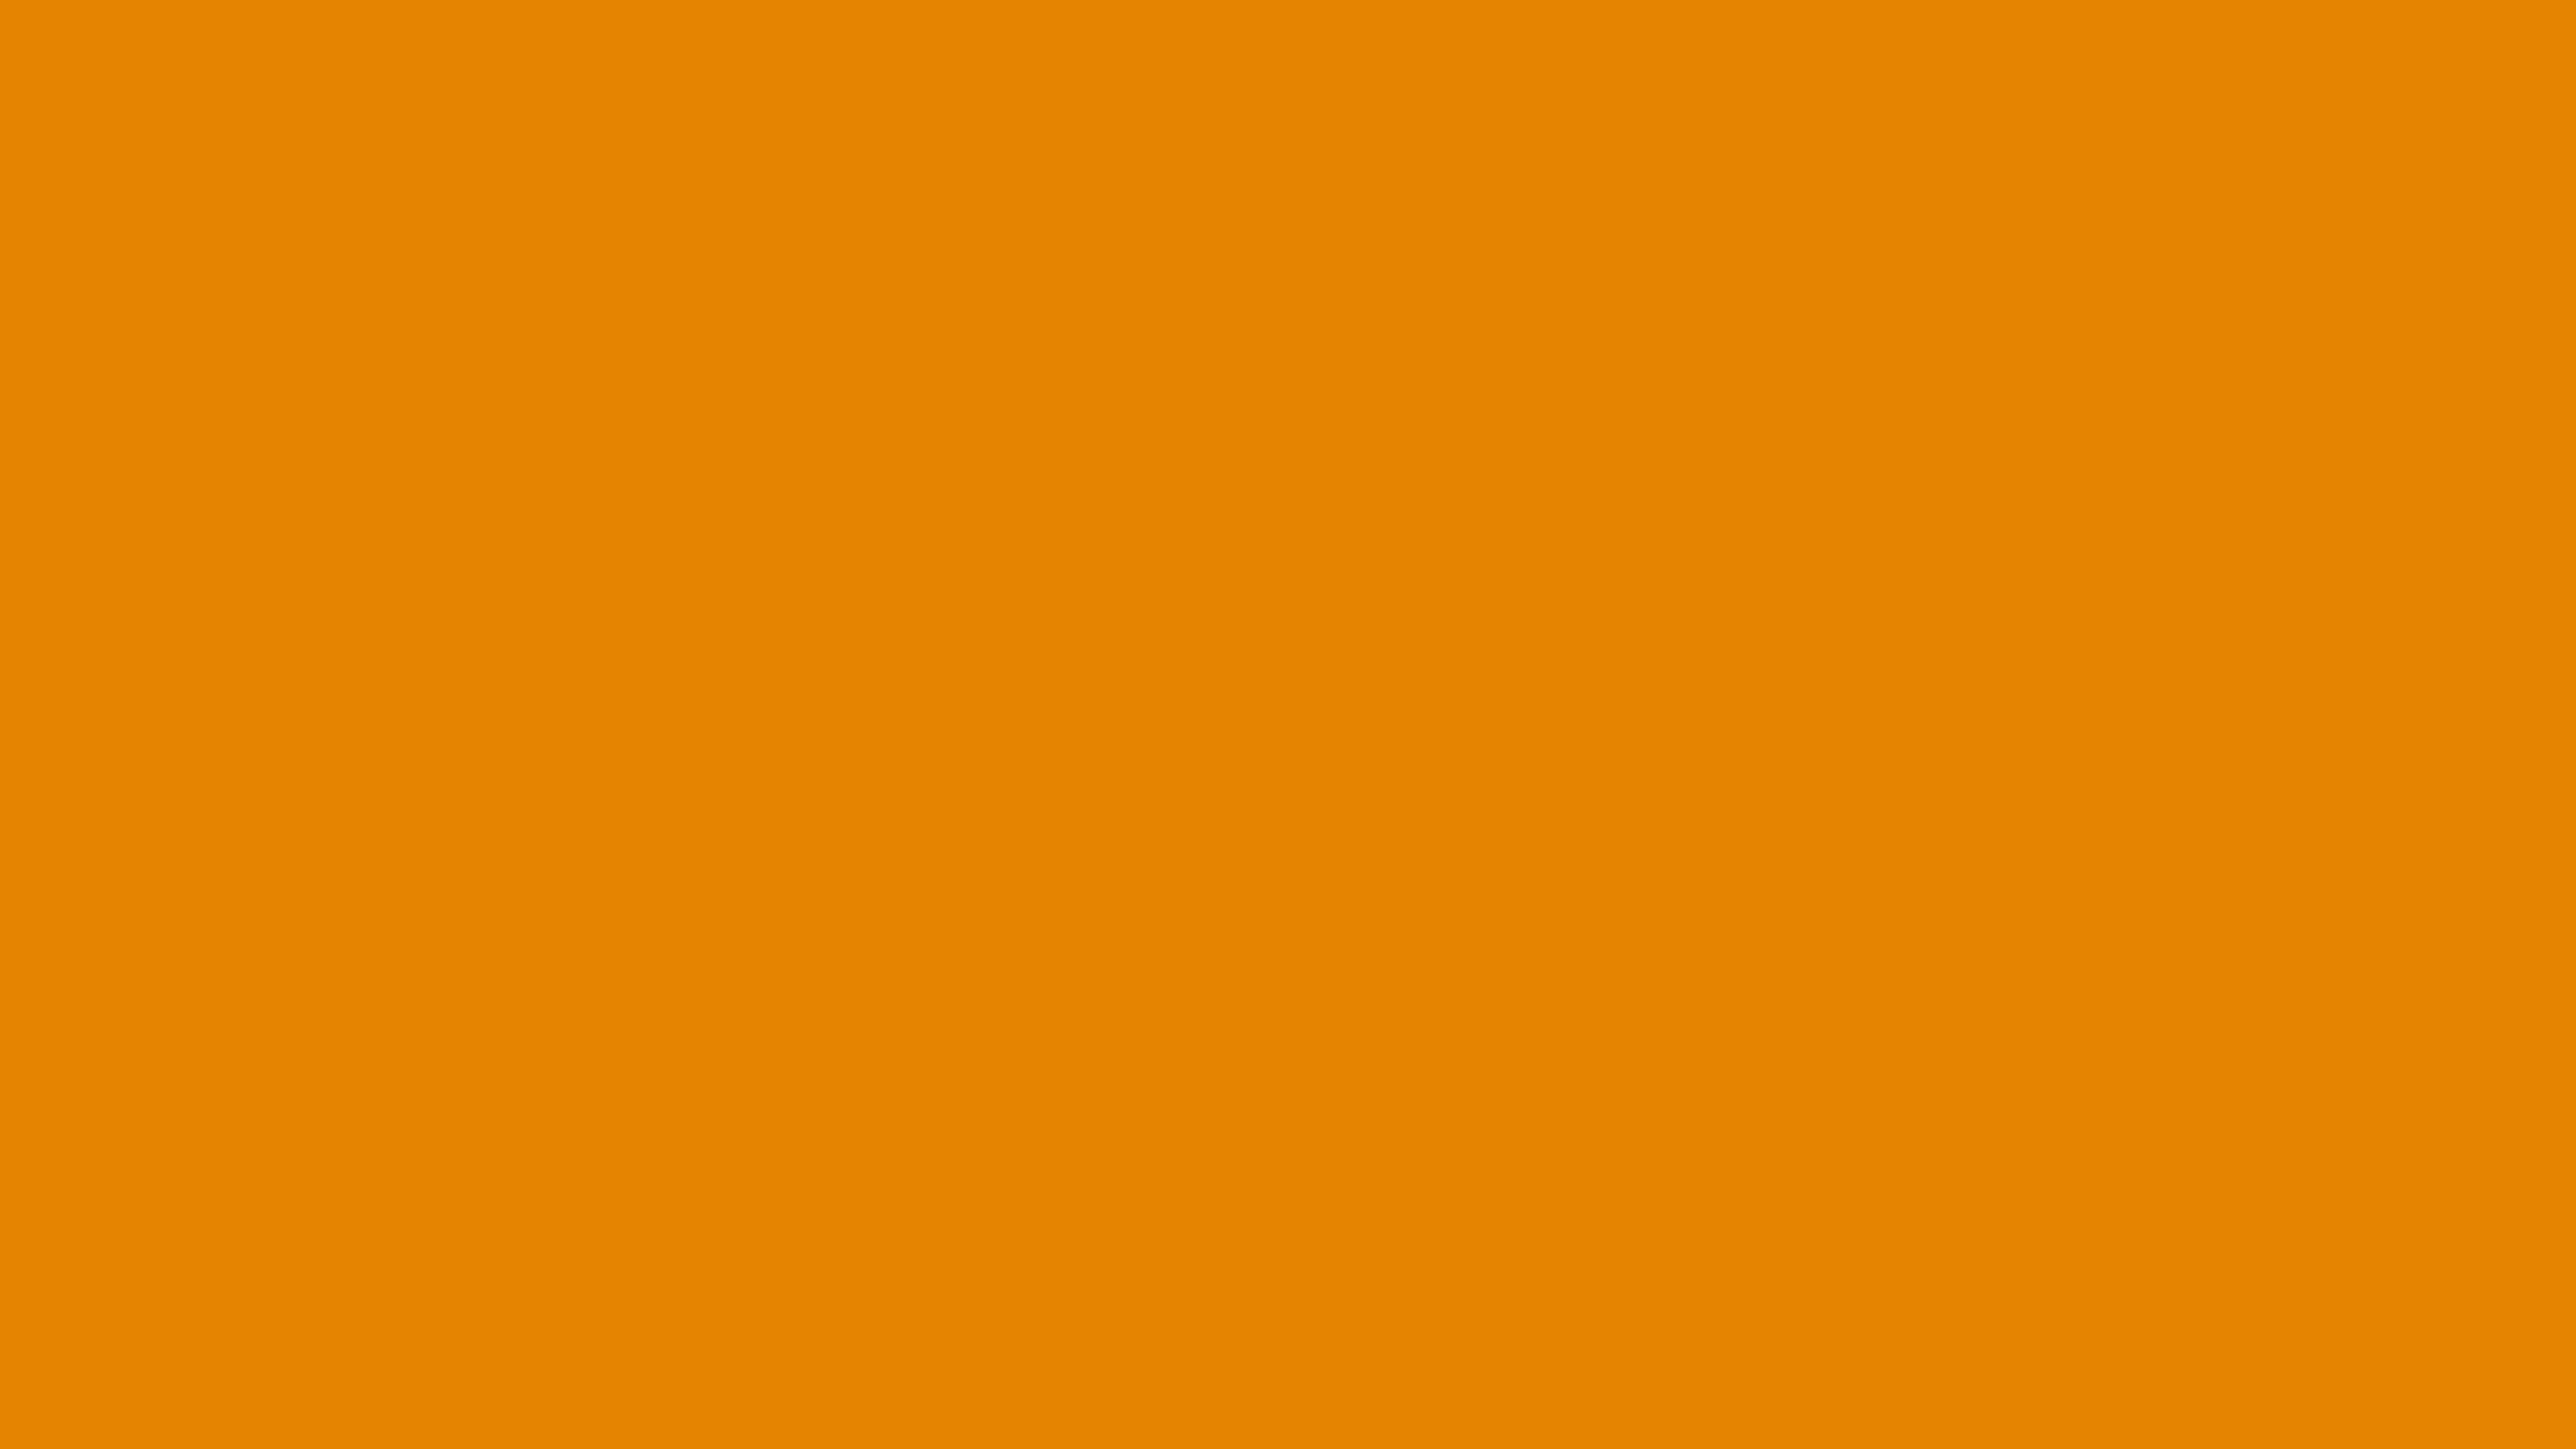 4096x2304 Fulvous Solid Color Background